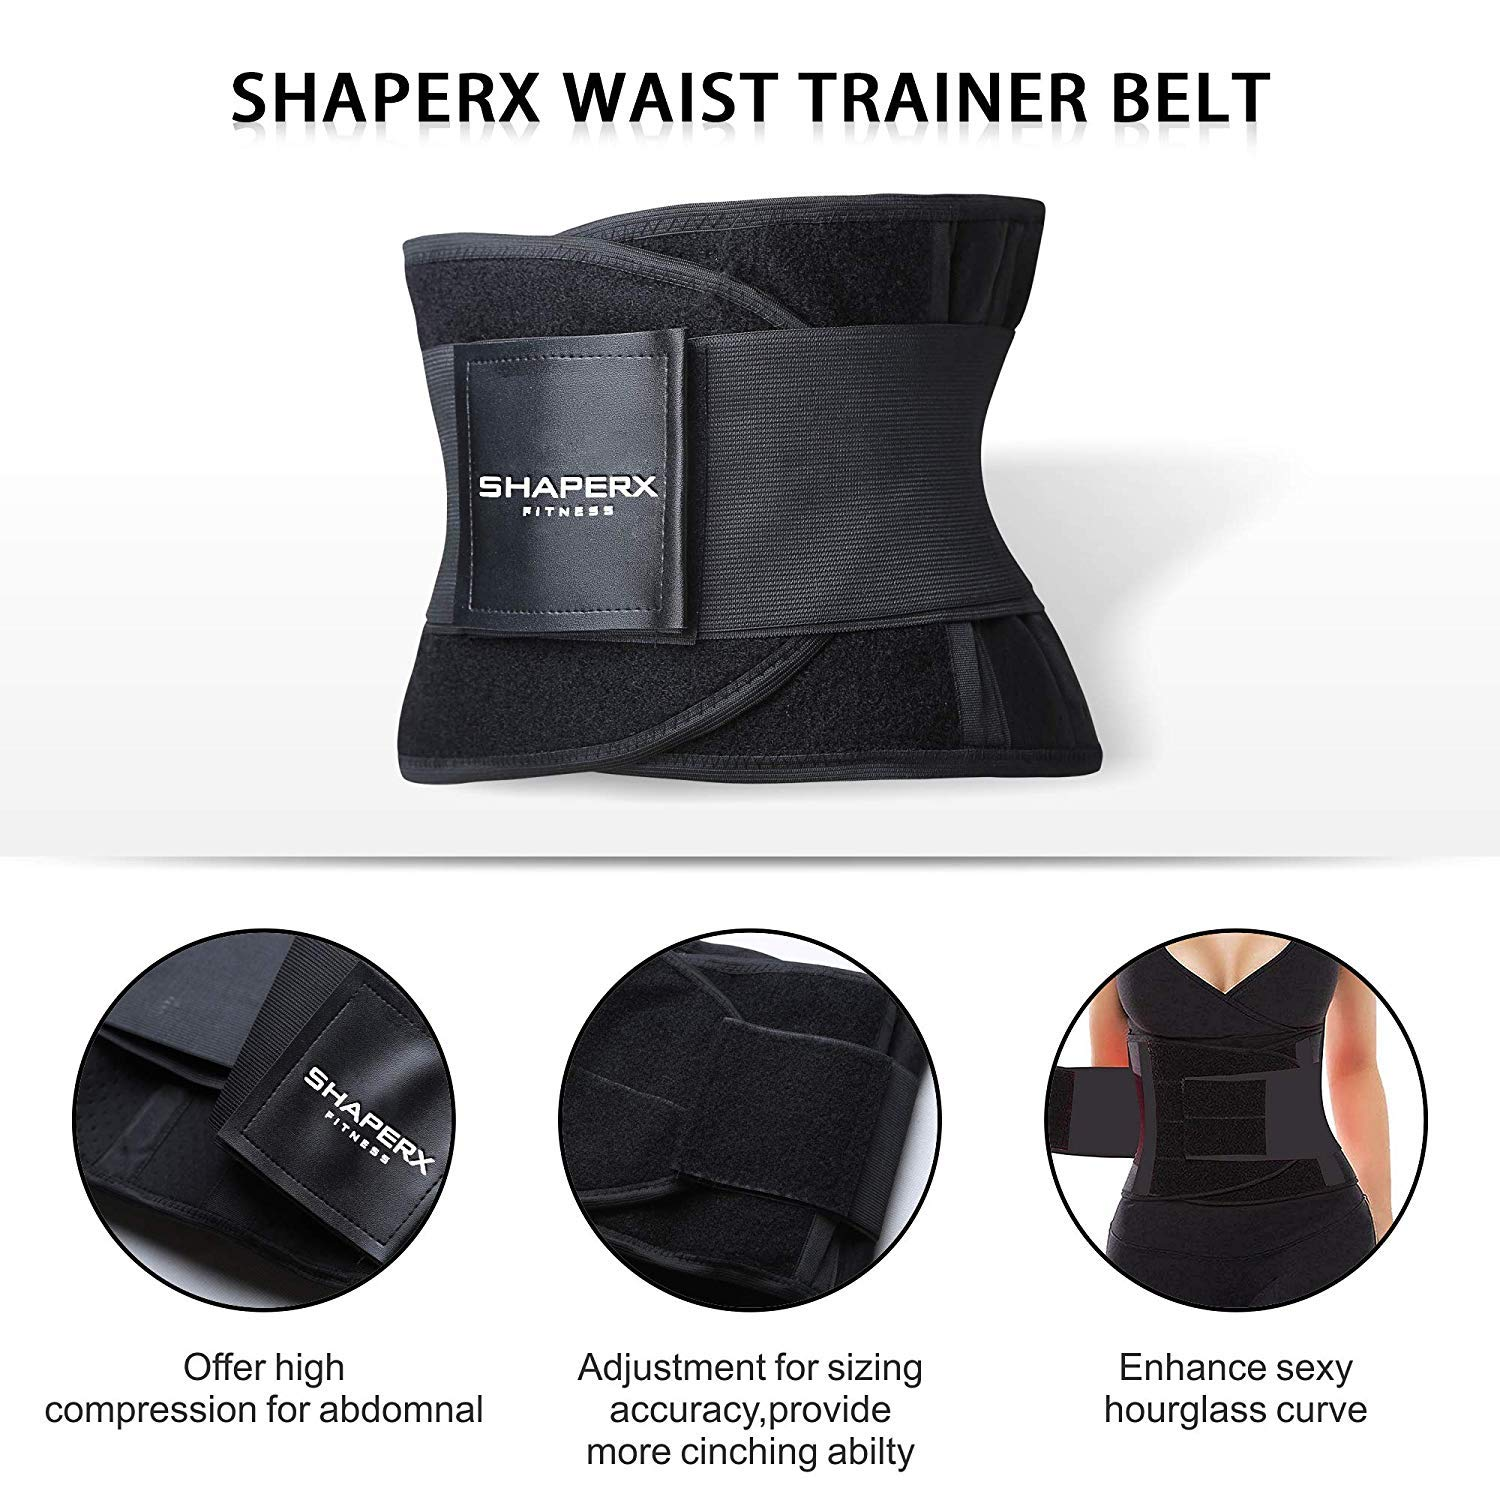 SHAPERX Womens Waist Trainer Belt Body Shaper Belly Wrap SZ8002-New-Black-M Trimmer Slimmer Compression Band for Weight Loss Workout Fitness